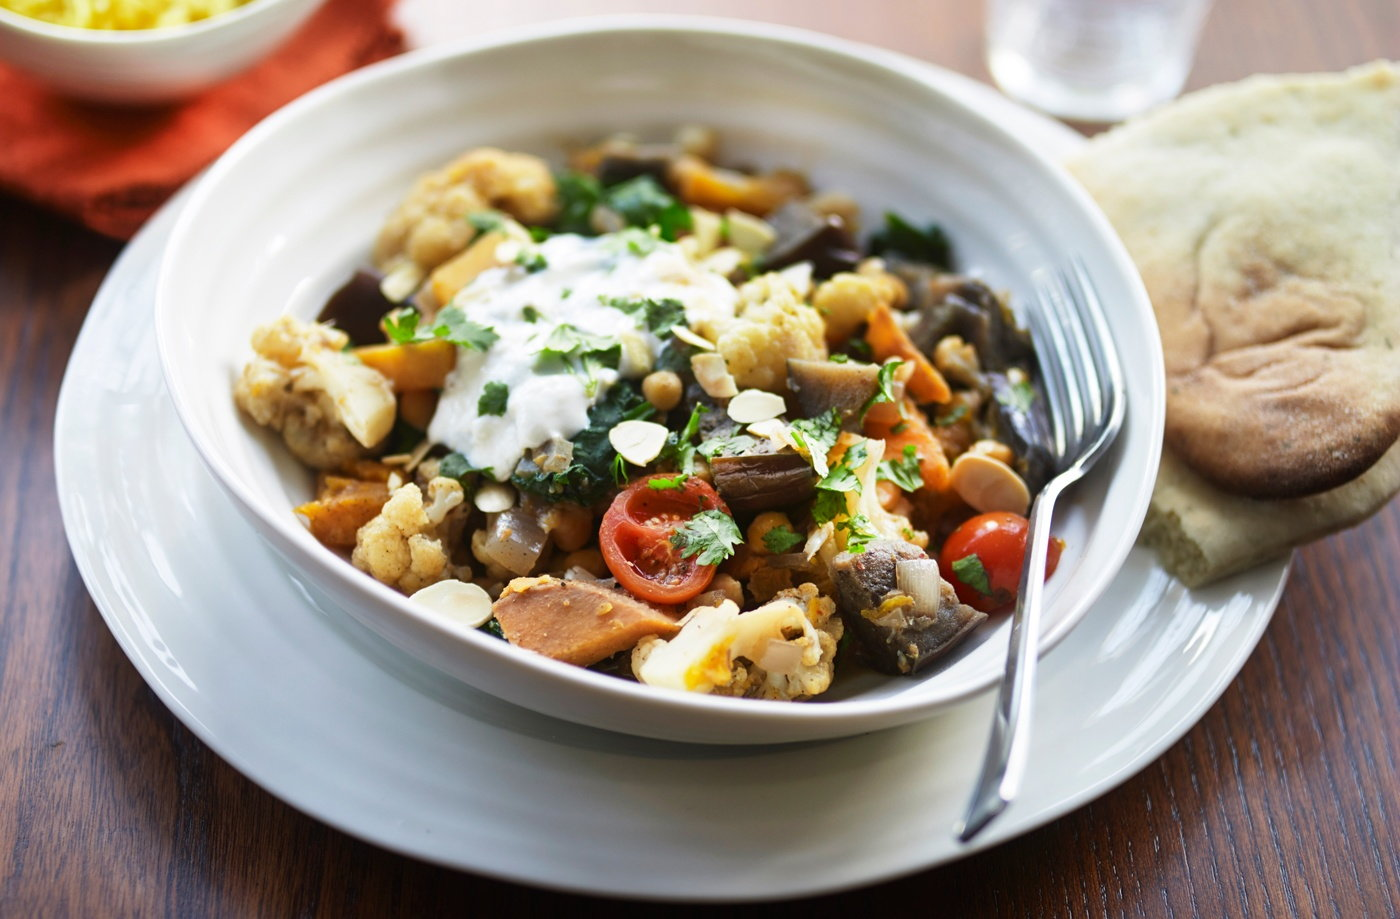 Roasted aubergine, vegetable and chickpea curry recipe